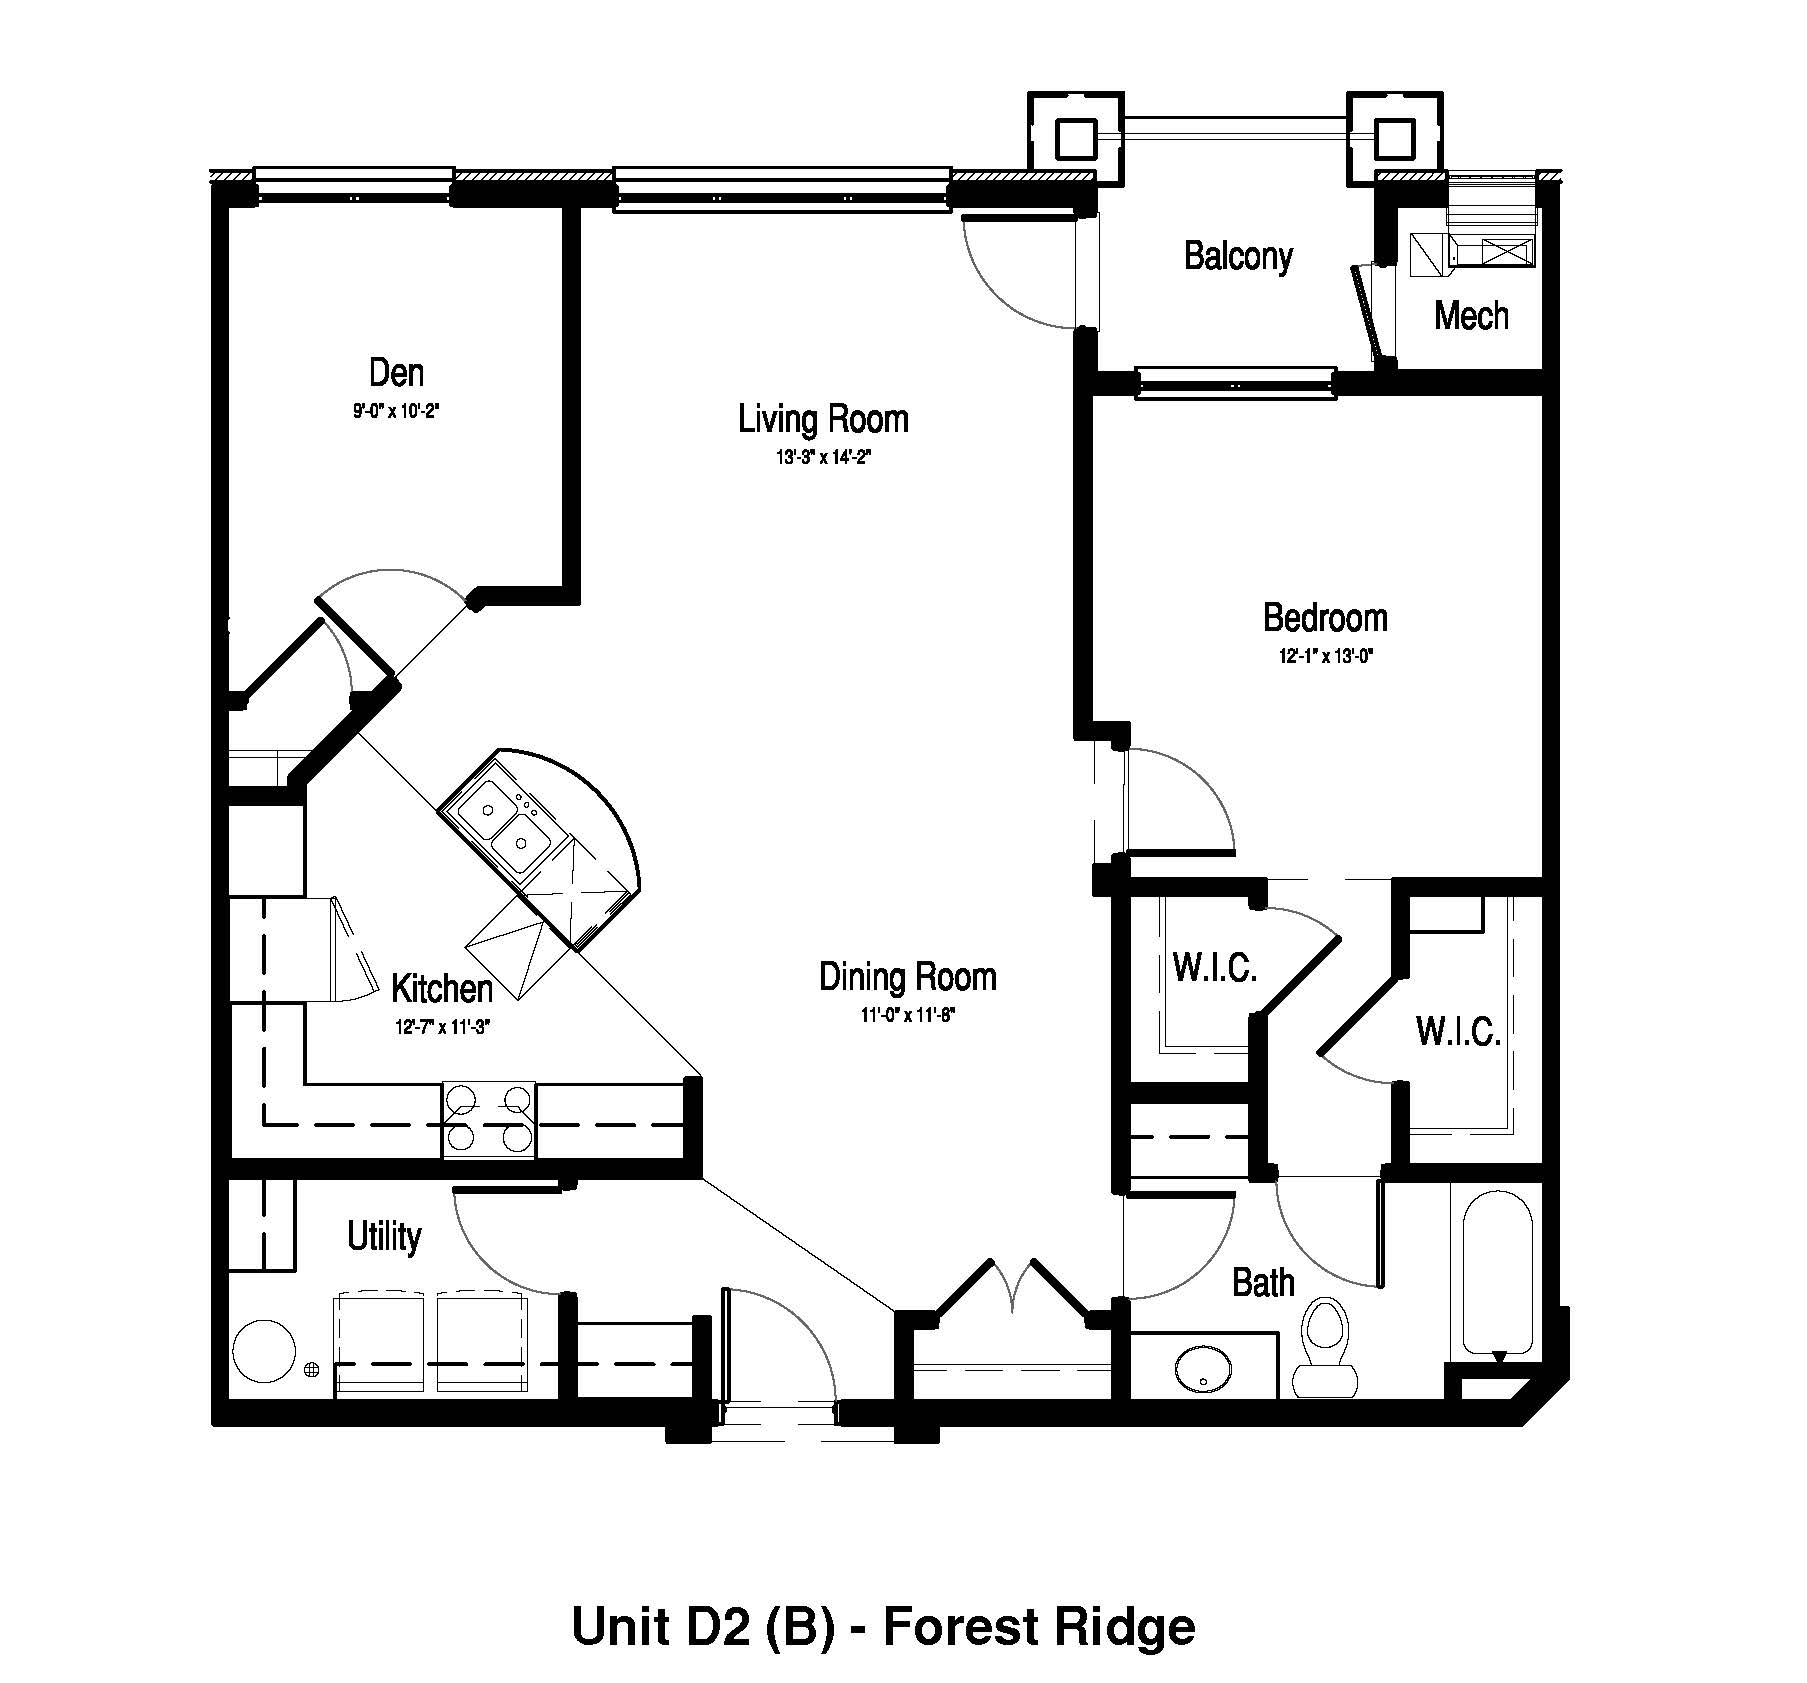 1 Bedroom, 1 Bath + Den - 1,147 Sq. Ft. - Forest Ridge Expansion